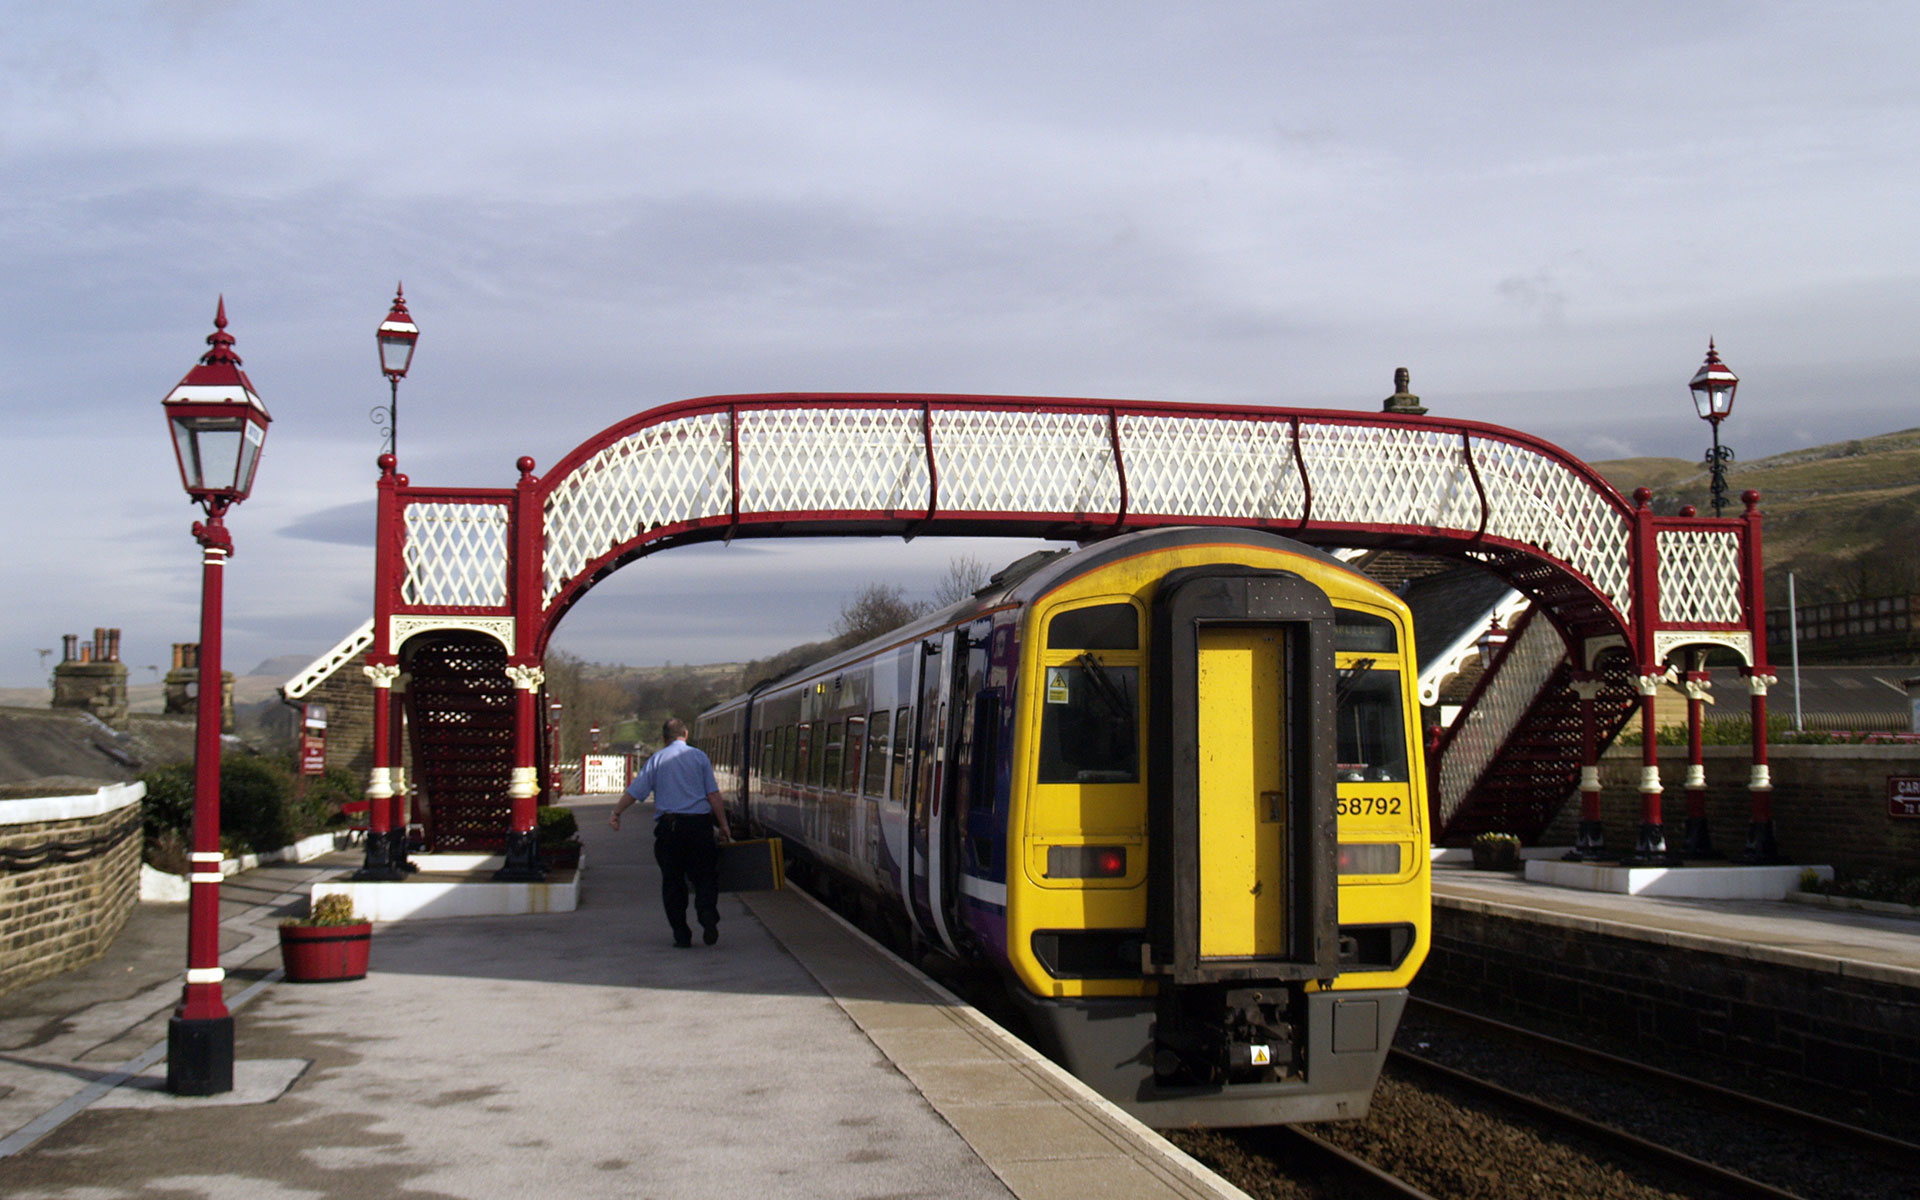 A northbound Northern Rail service pauses at Settle en route to Carlisle (photo © hidden europe).